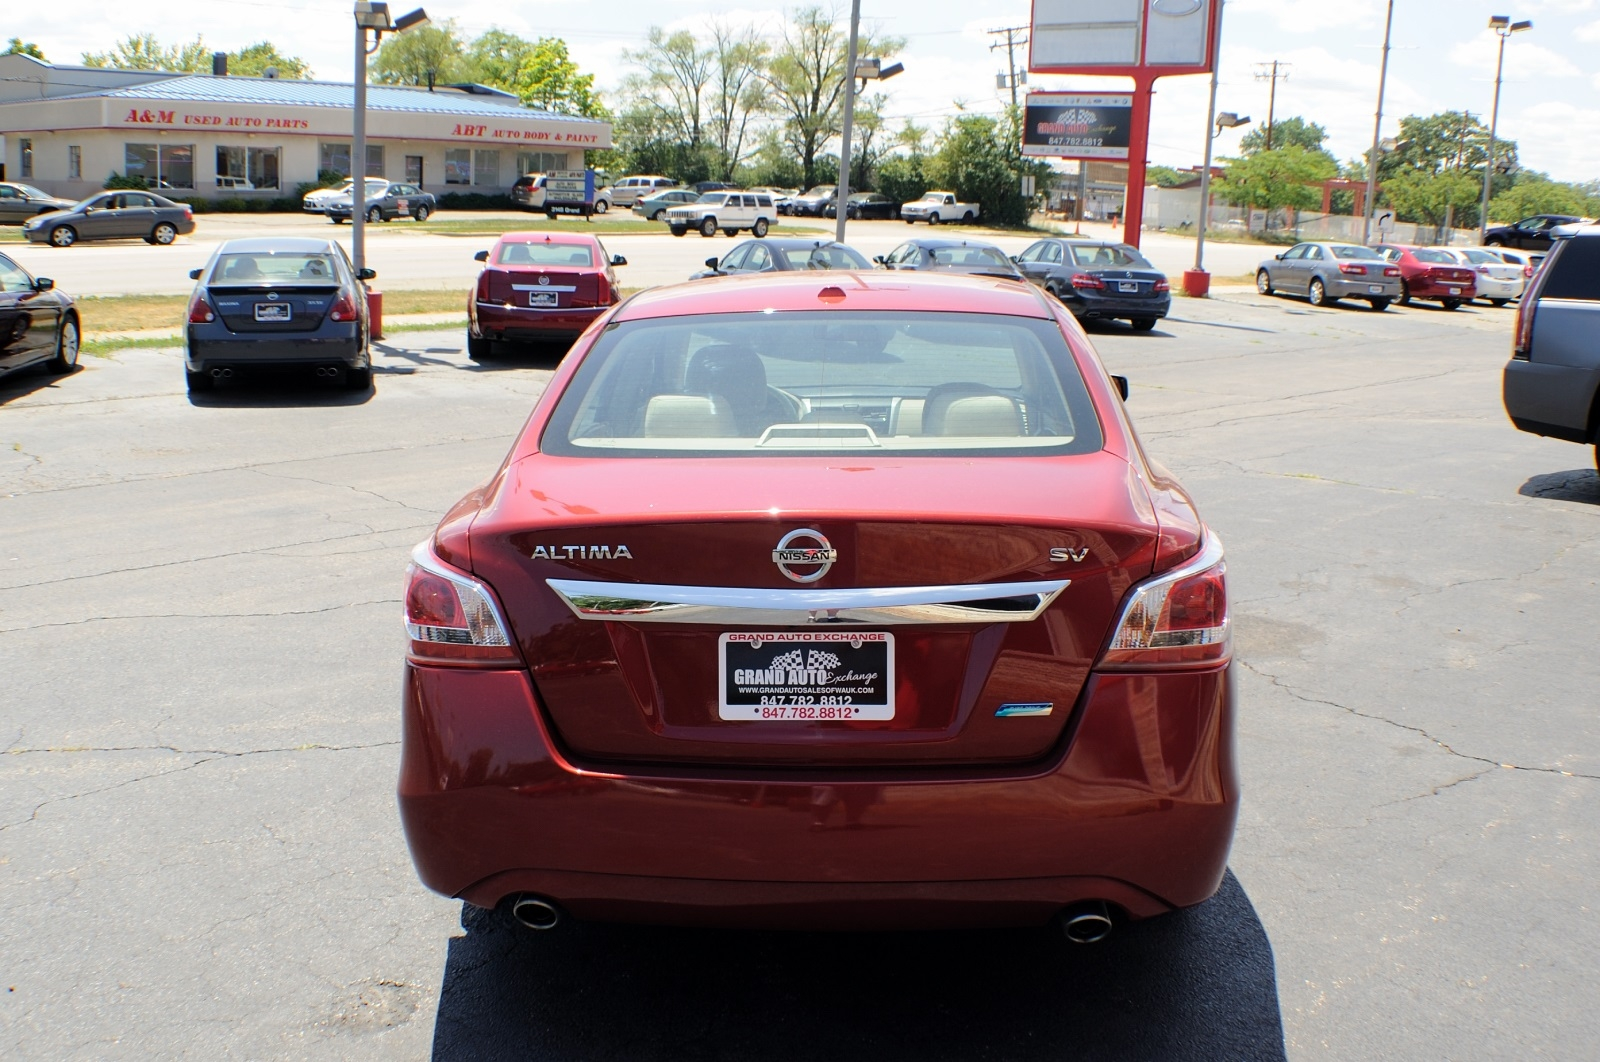 2013 Nissan Altima Red SV Sedan used car sale Buffalo Grove Deerfield Fox Lake